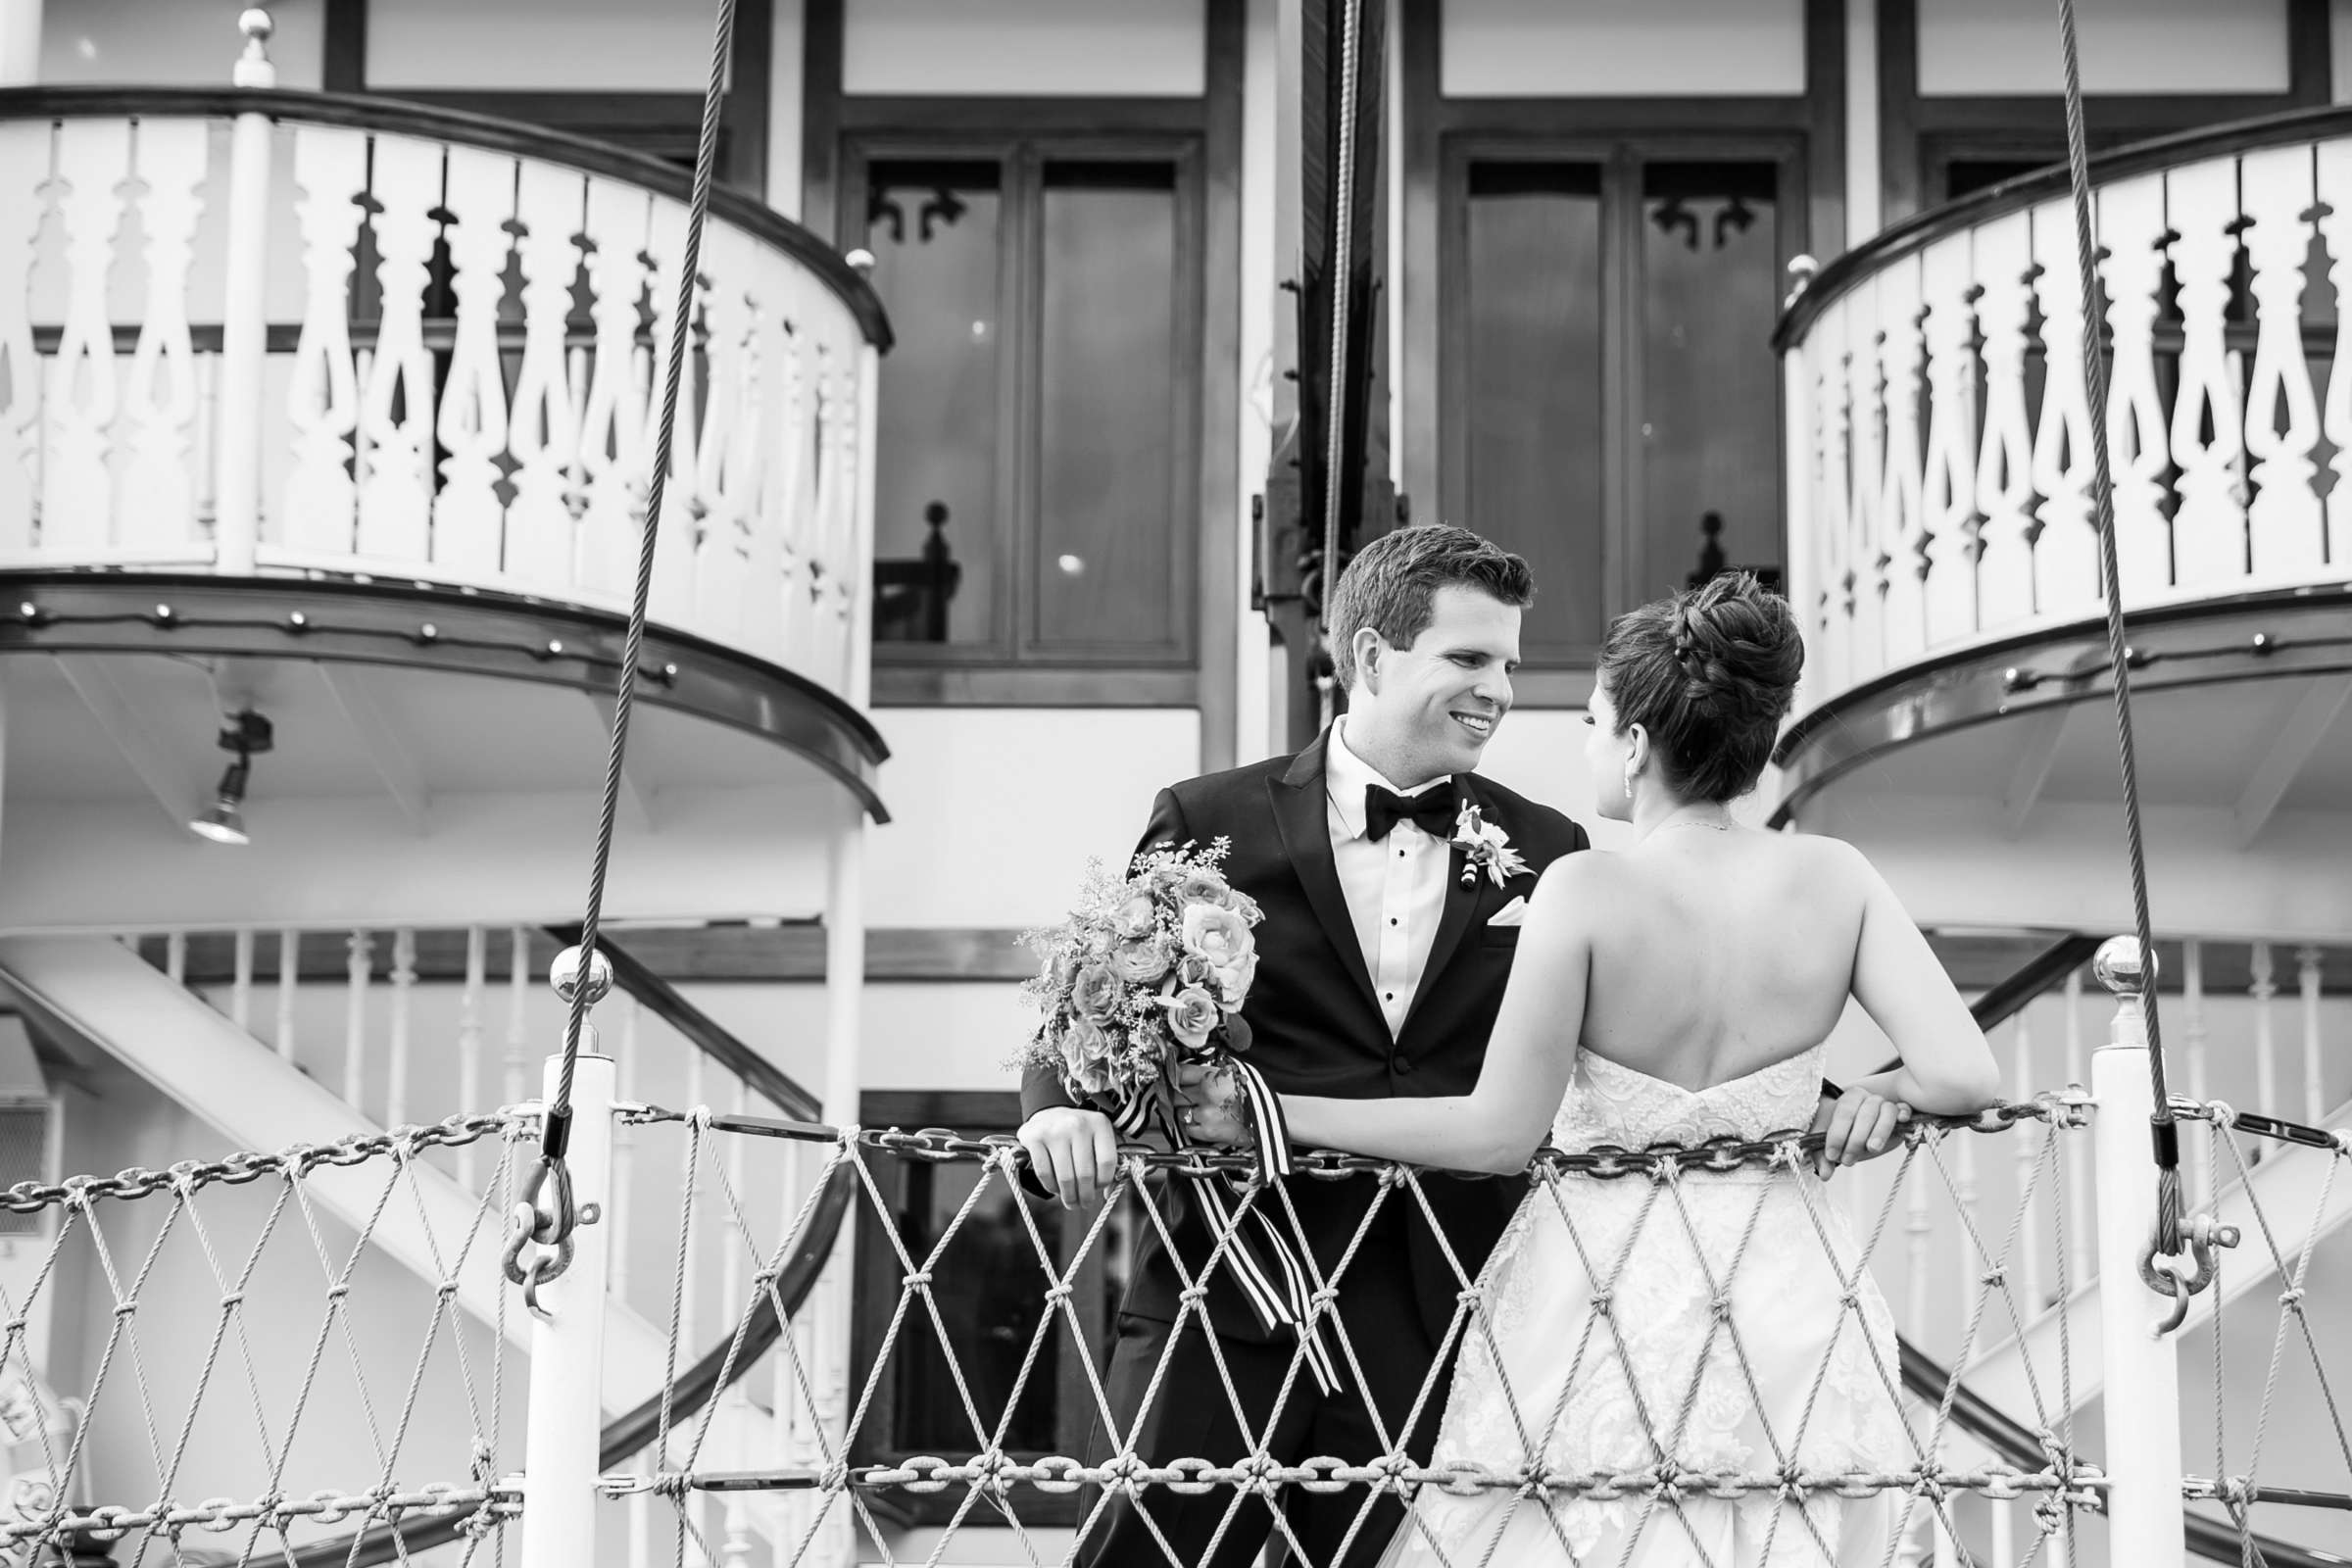 Boat Wedding at Bahia Hotel Wedding coordinated by I Do Weddings, Meredith and Jack Wedding Photo #12 by True Photography